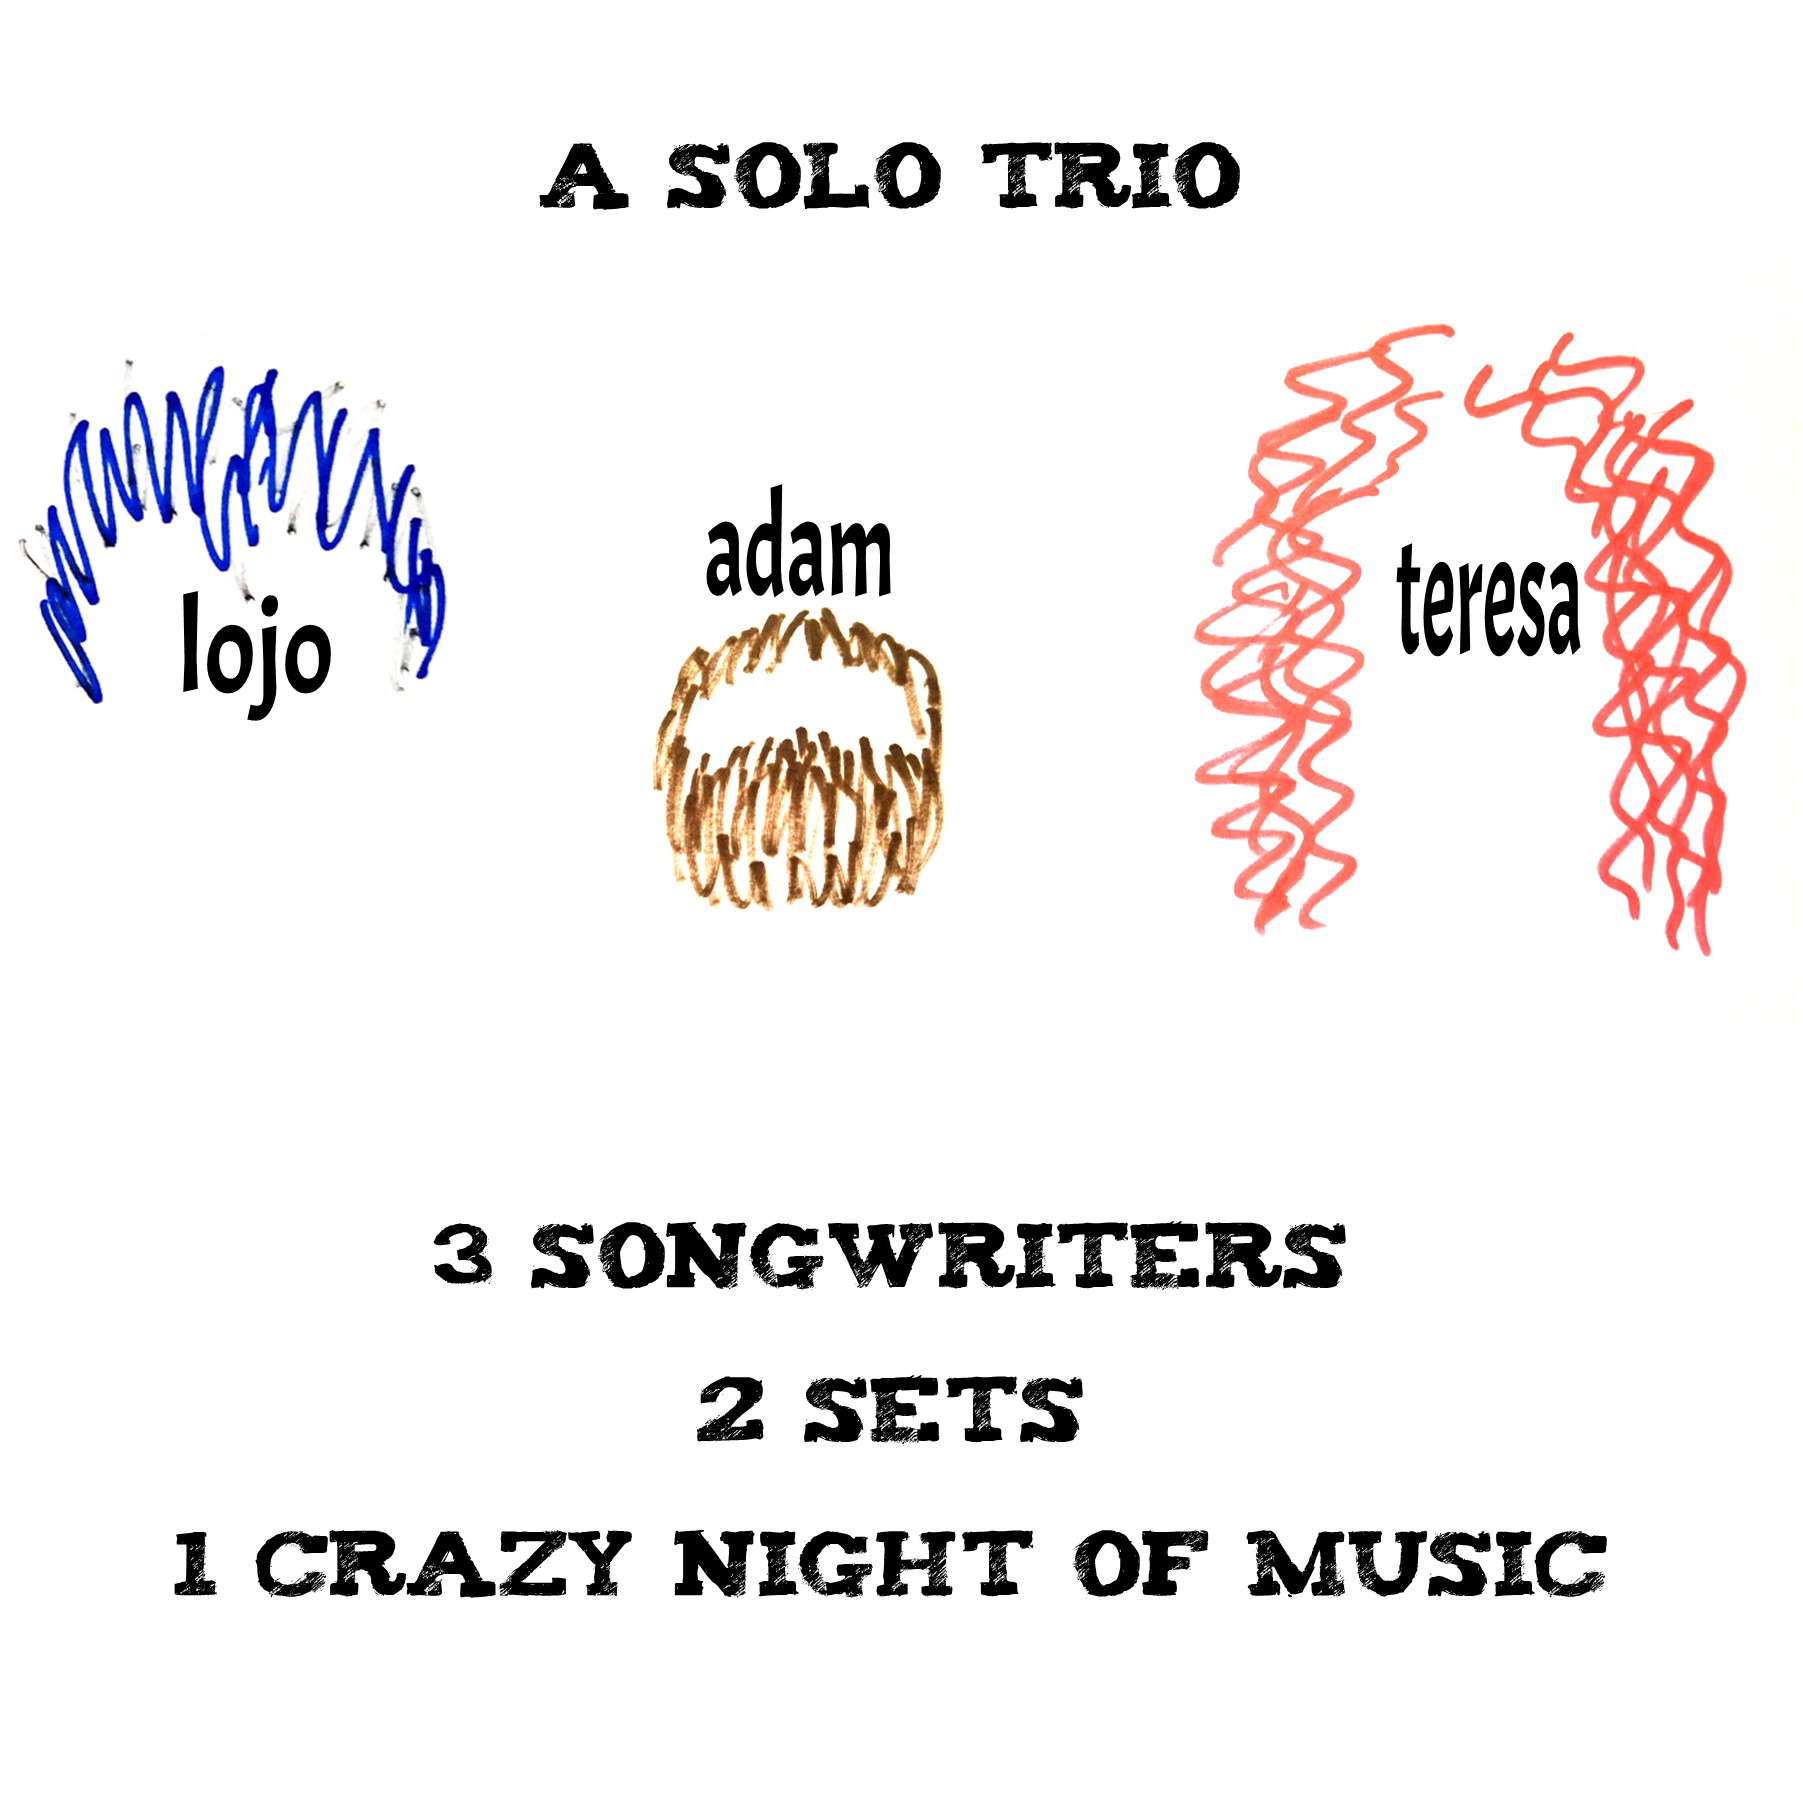 Solo Trio: 3 songwriters, 2 sets, 1 crazy night of music